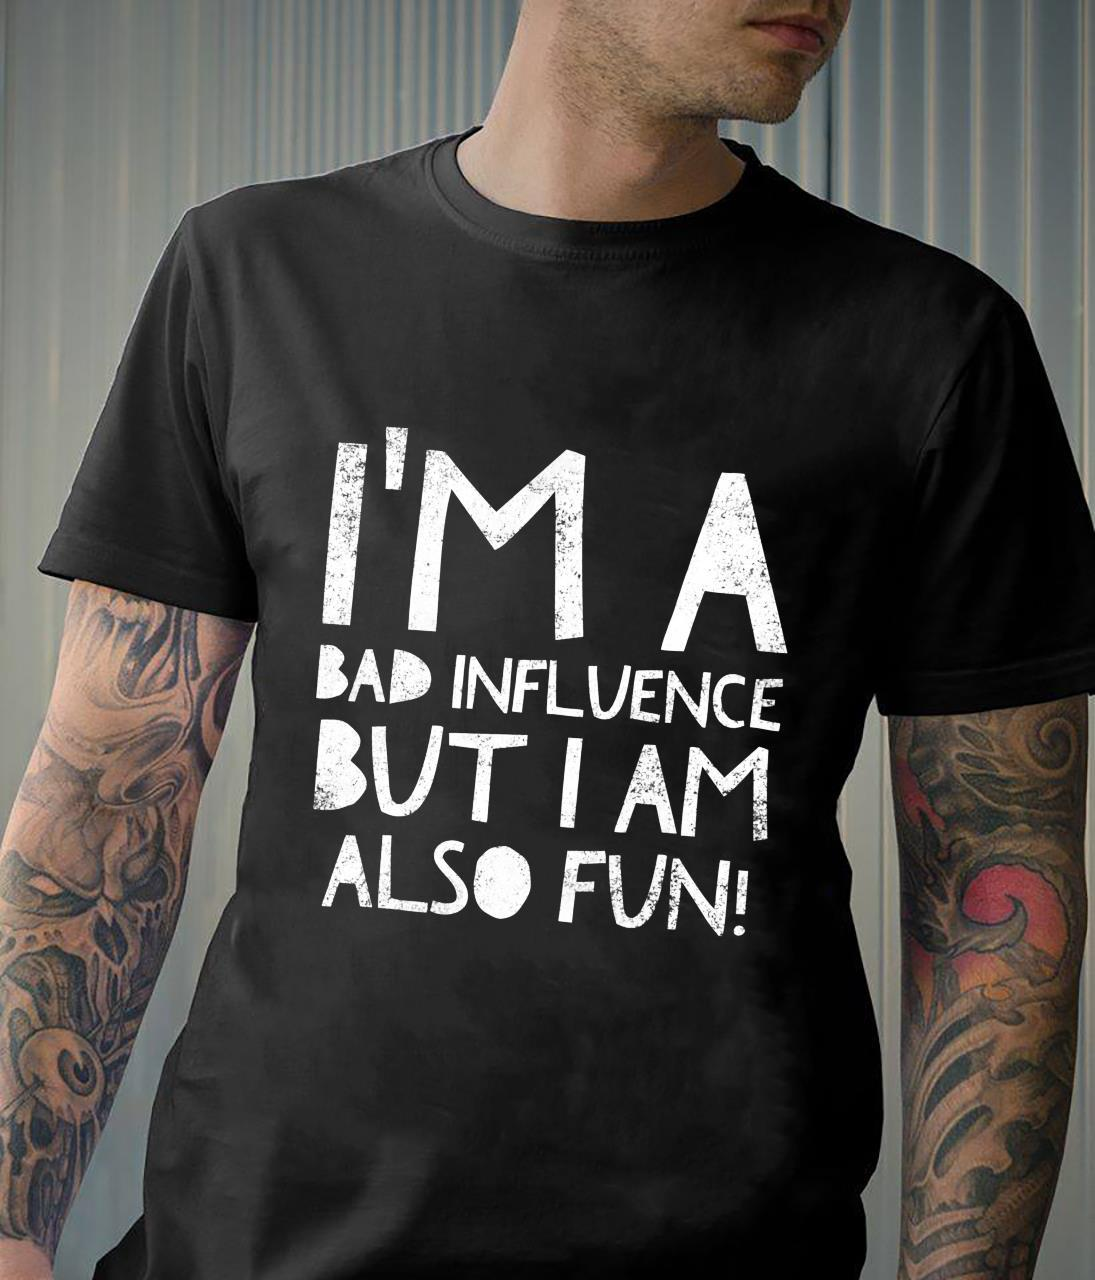 I'm a bad influence but I am also fun Quote Humor Shirt